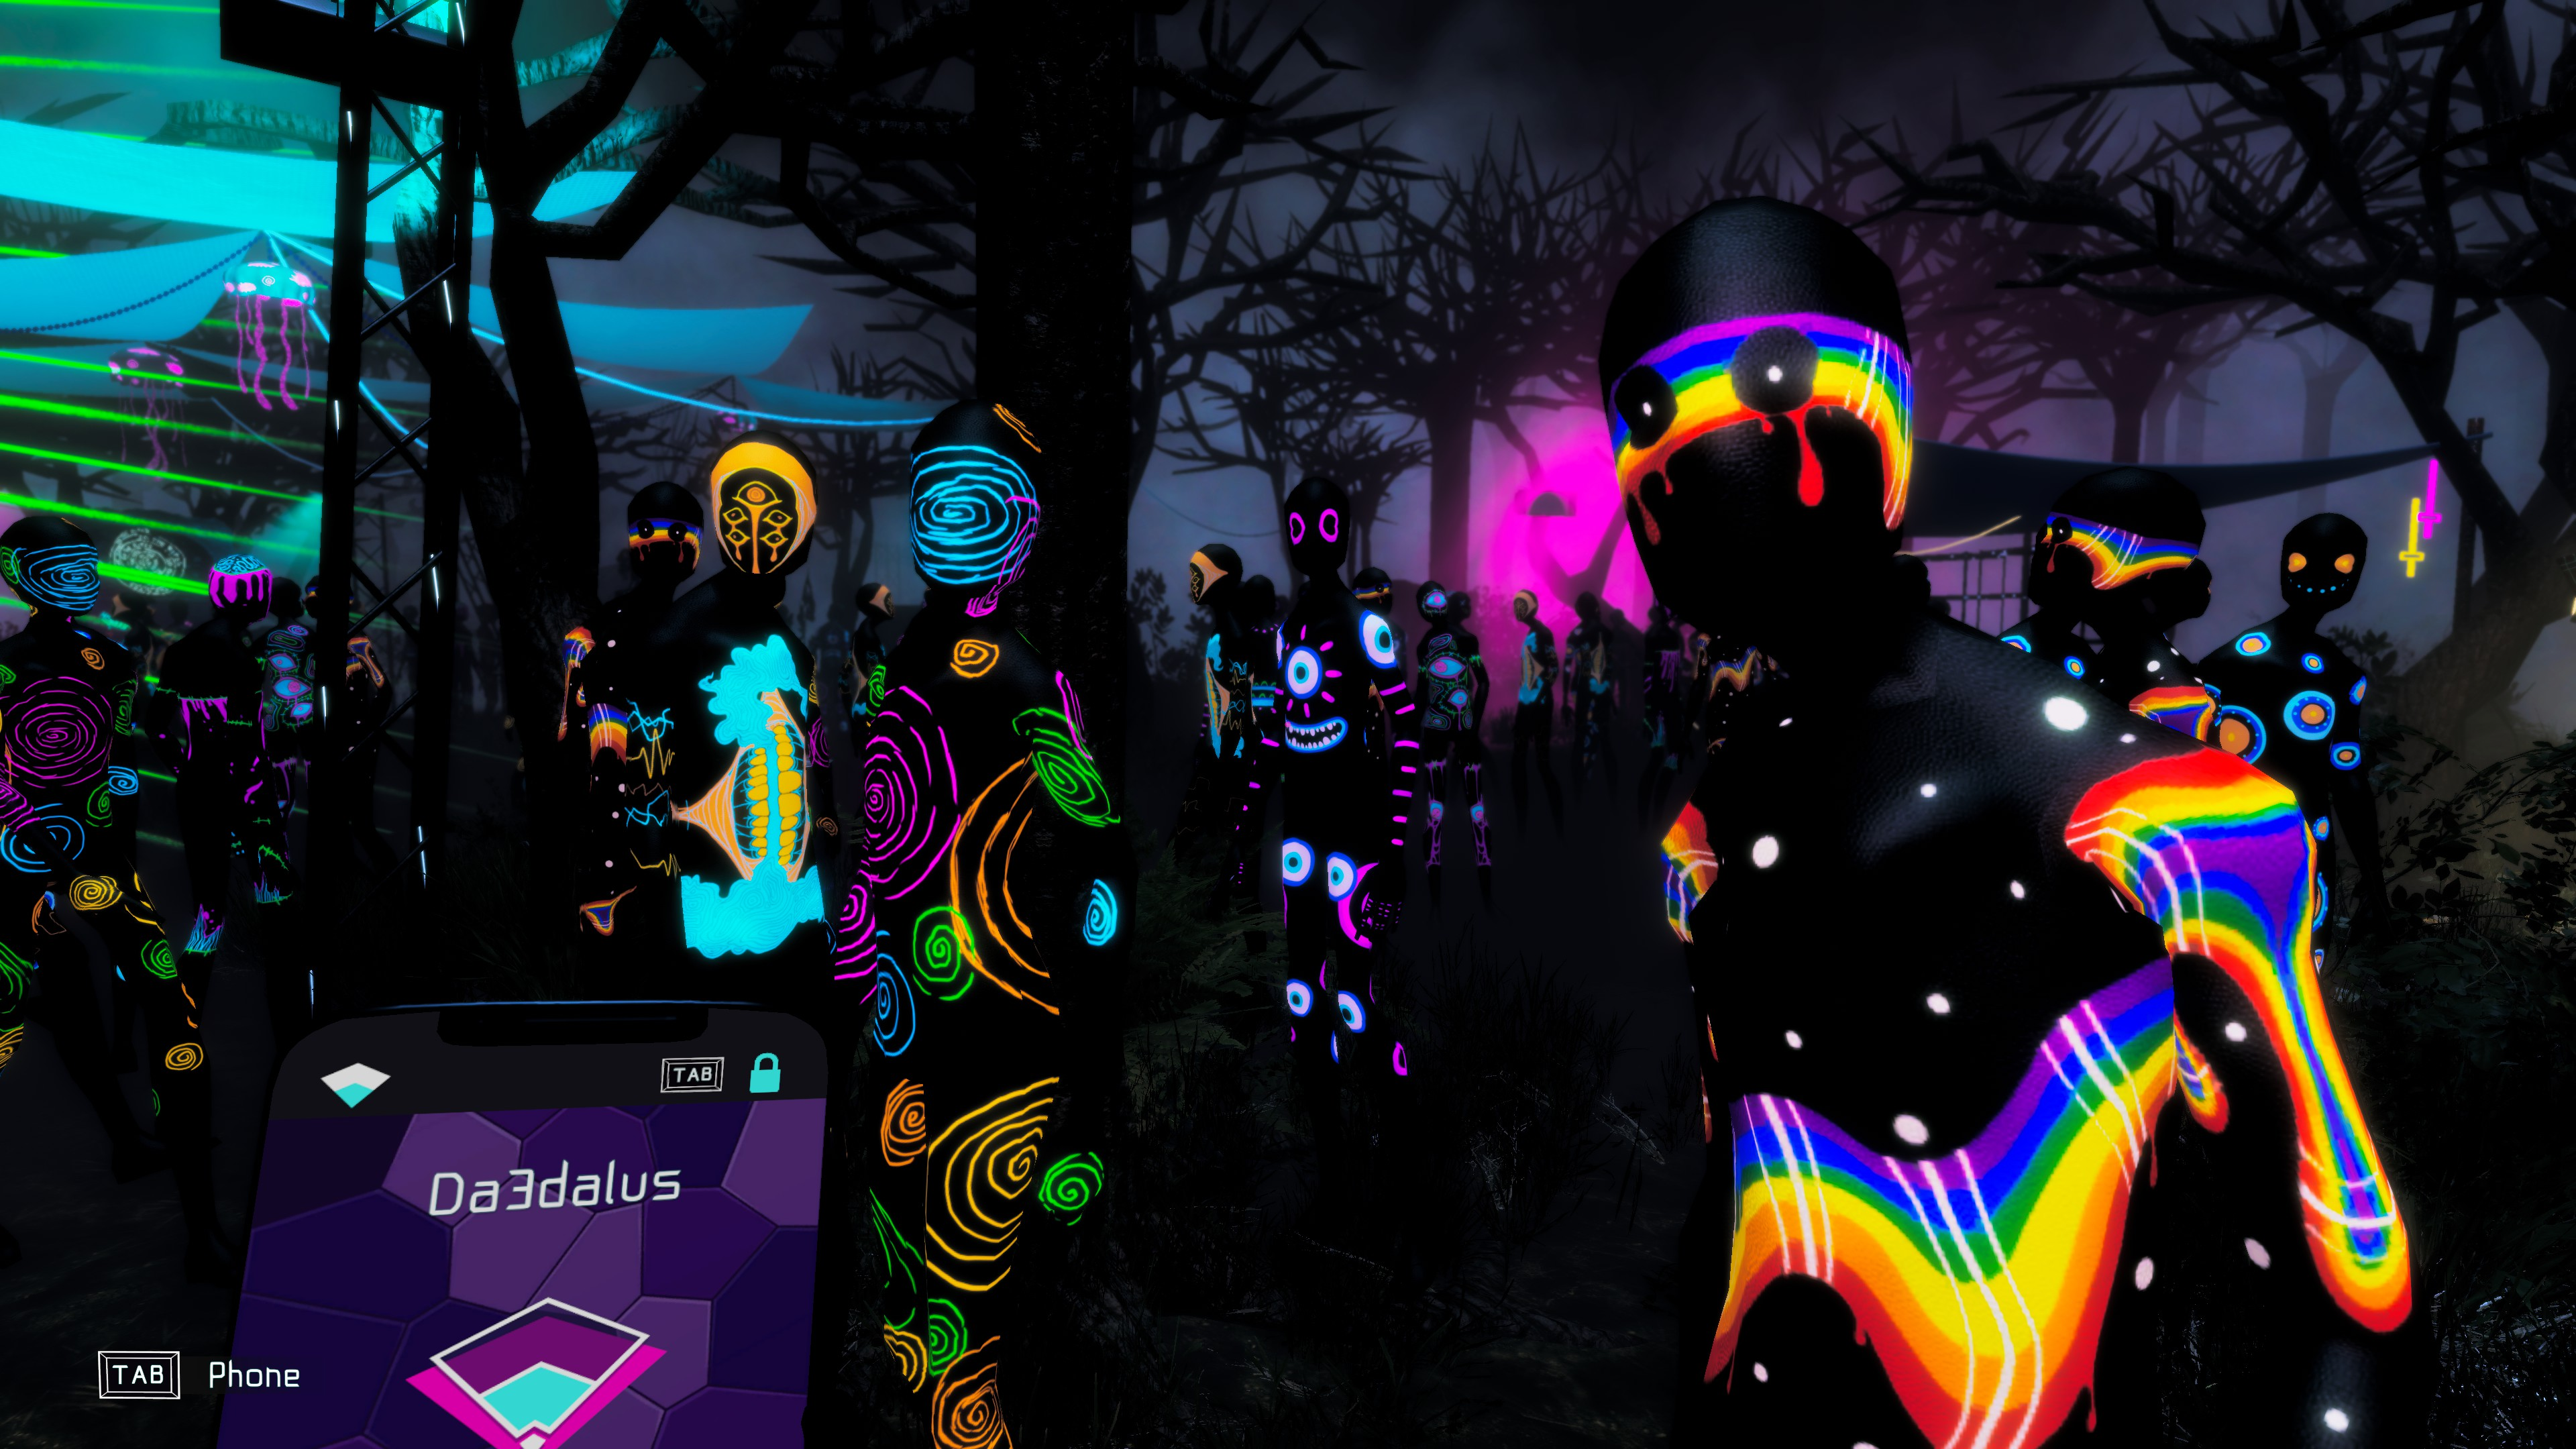 Strobophagia   Rave Horror. Ravers in neon outfits all looking at the player.